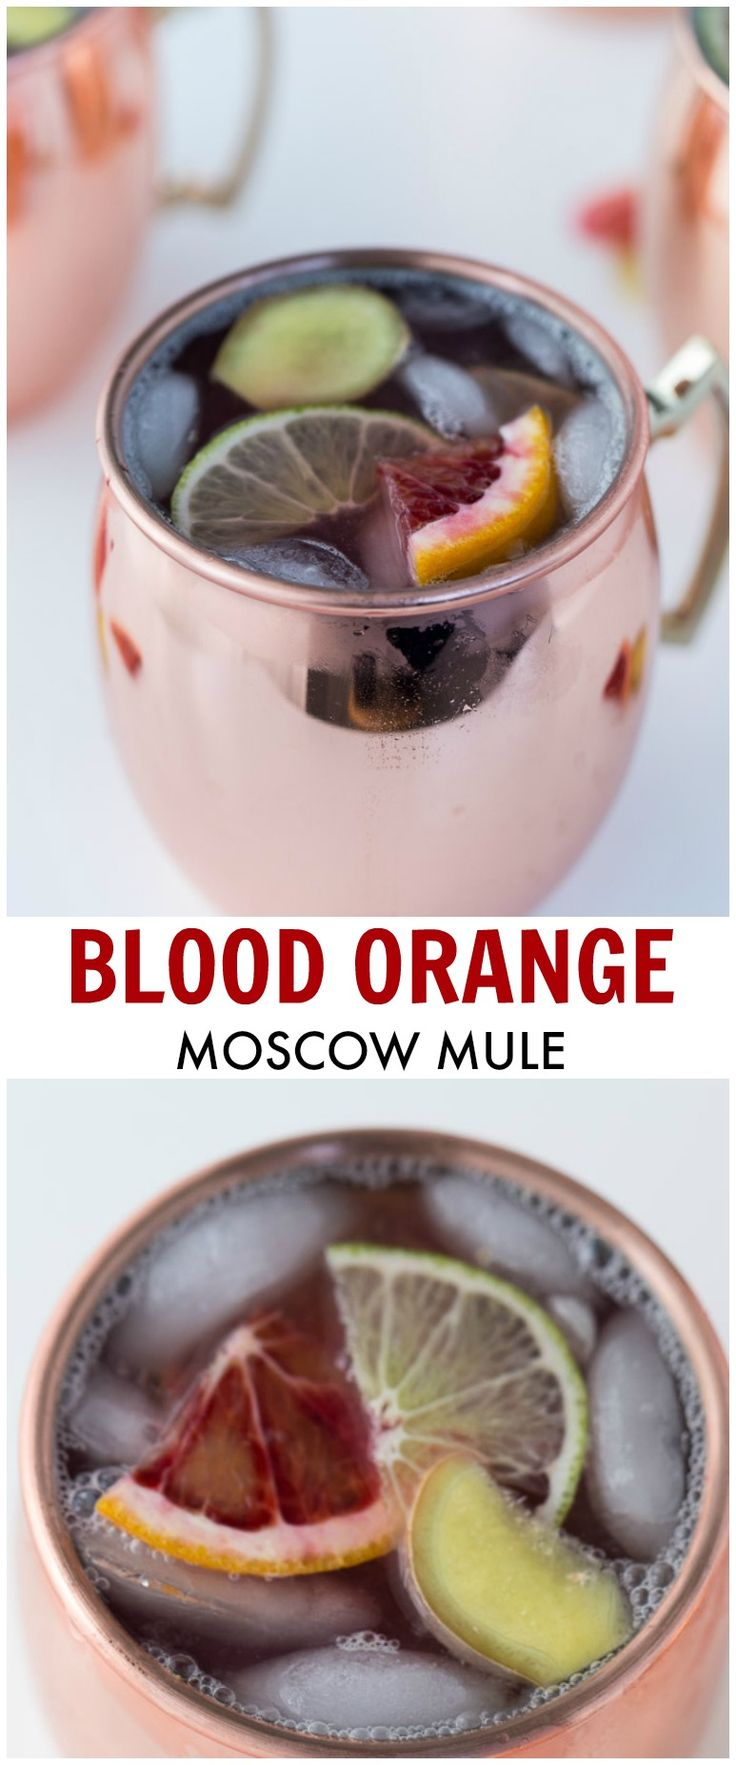 A fun and winter twist to the classic Moscow Mule recipe. This Blood Orange Moscow Mule is easy, smooth and refreshing.